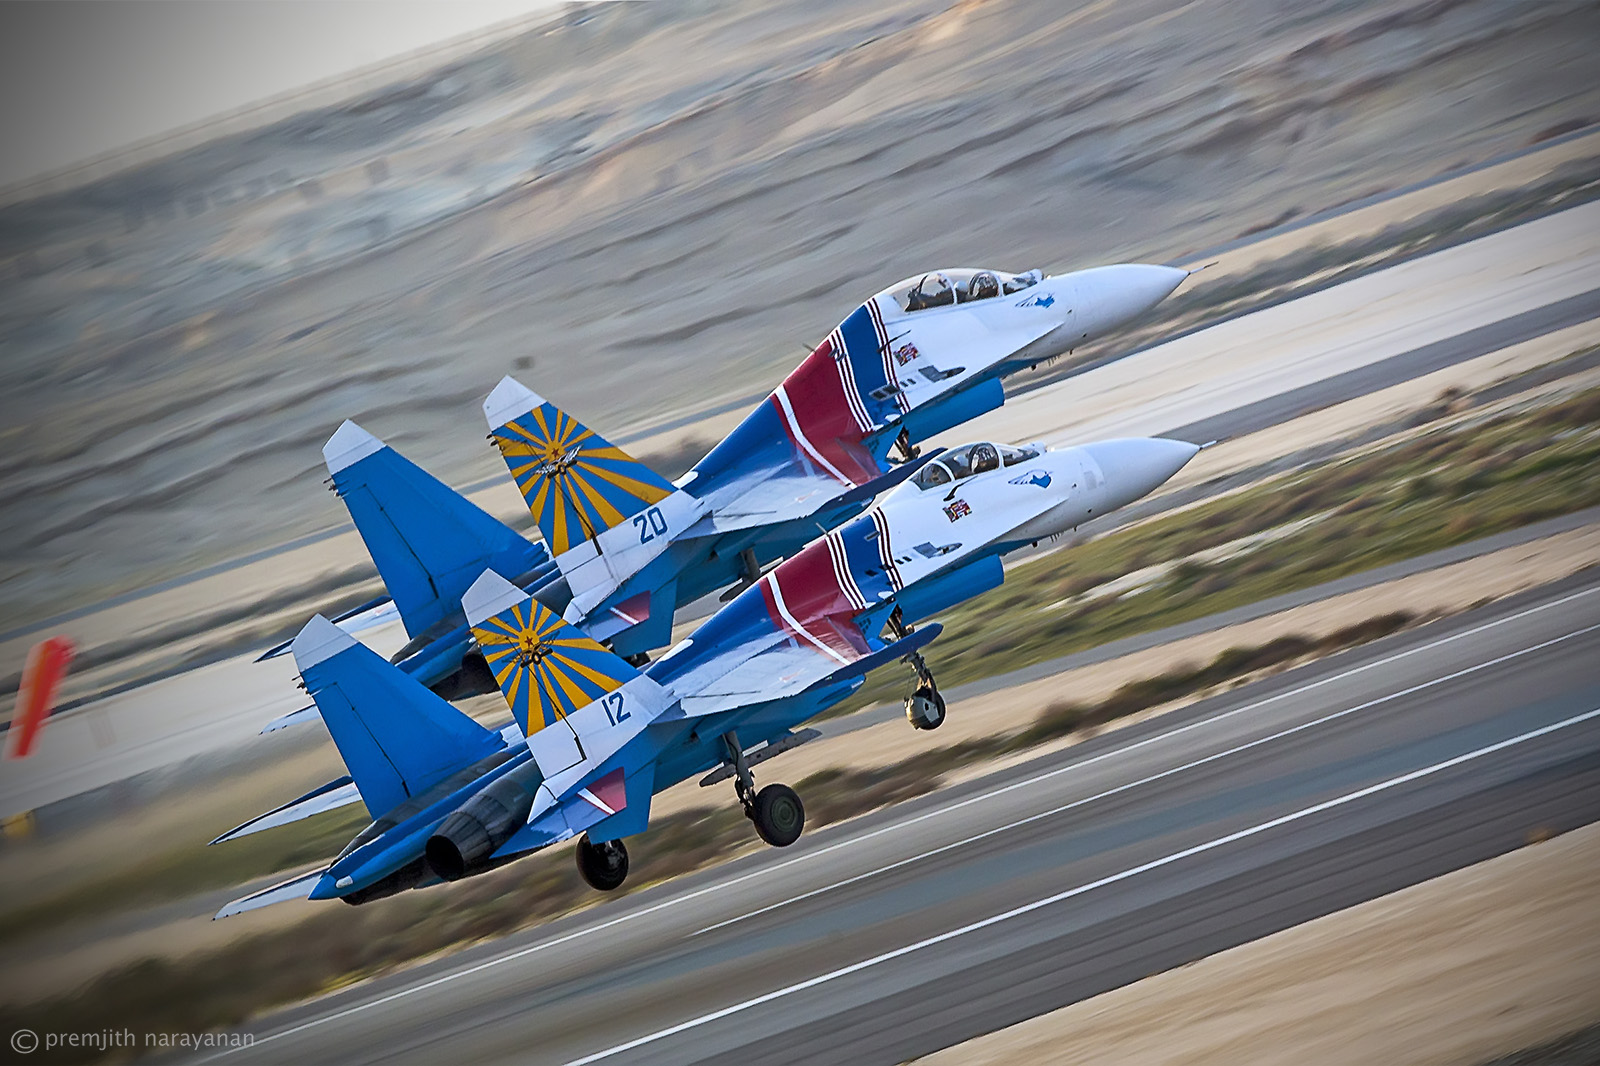 The Swift SUKHOI's Taking off...